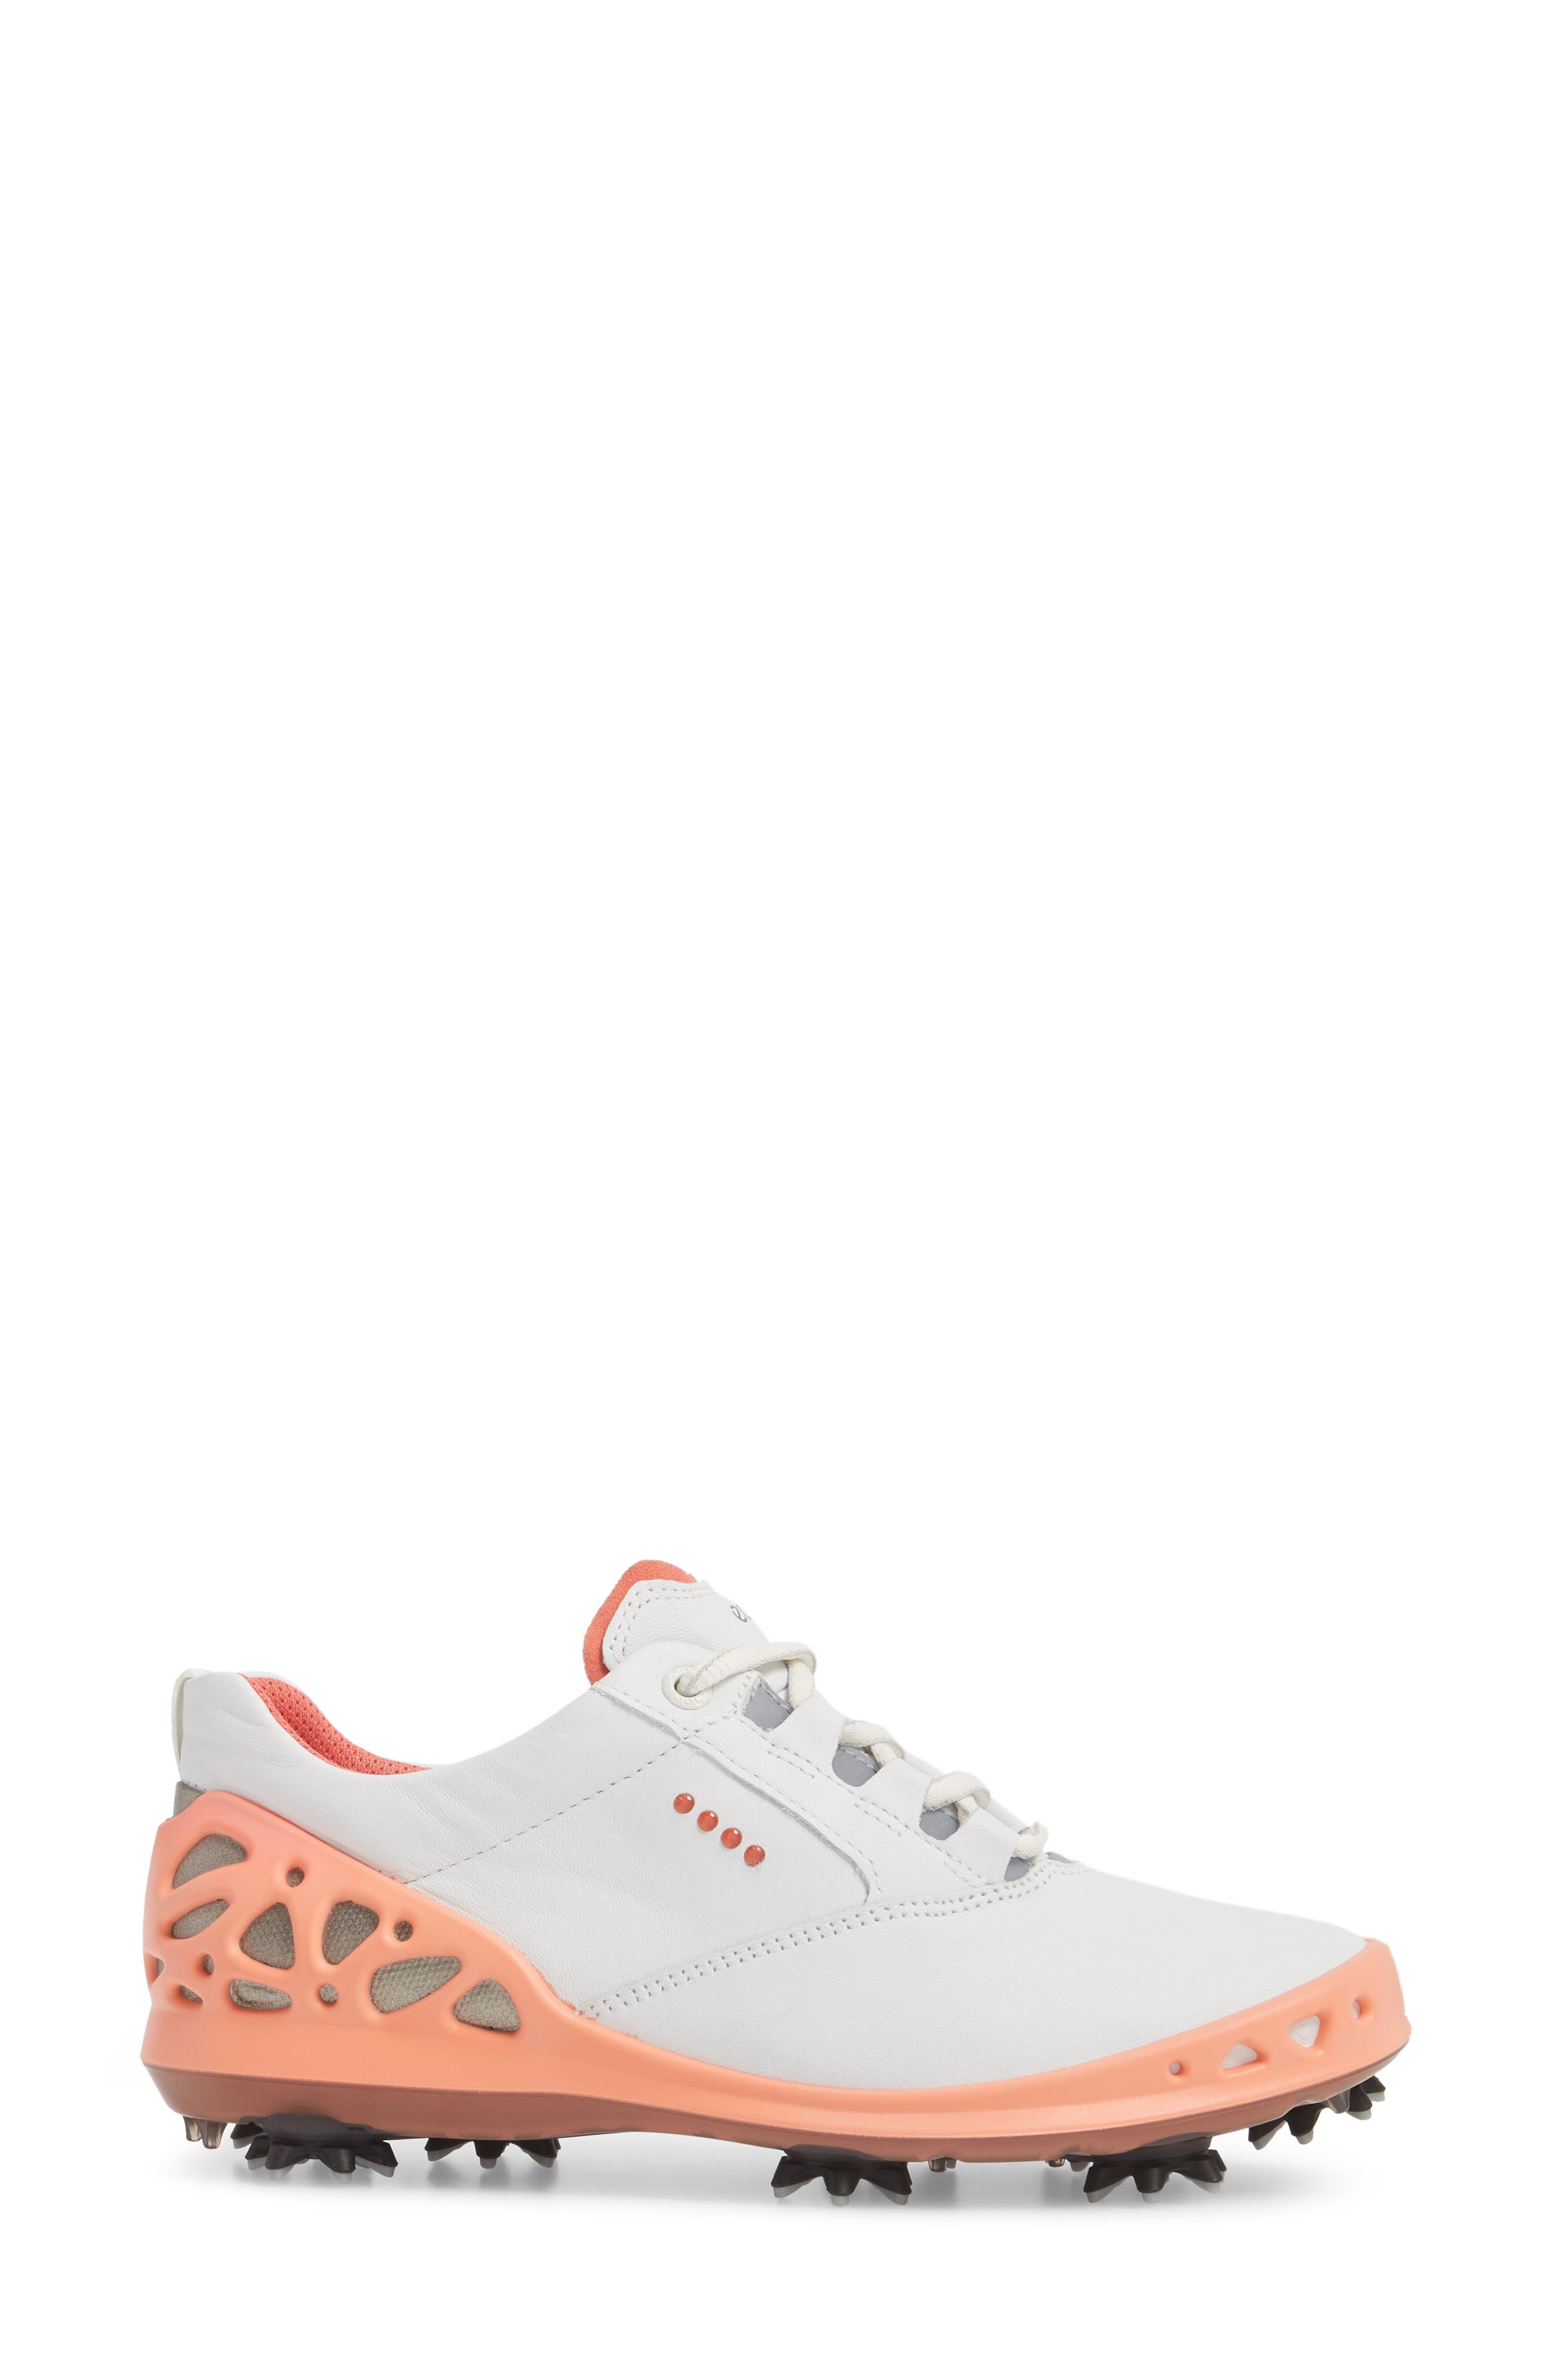 Cage Gore-Tex<sup>®</sup> Golf Shoe,                             Alternate thumbnail 3, color,                             White/ Coral Leather